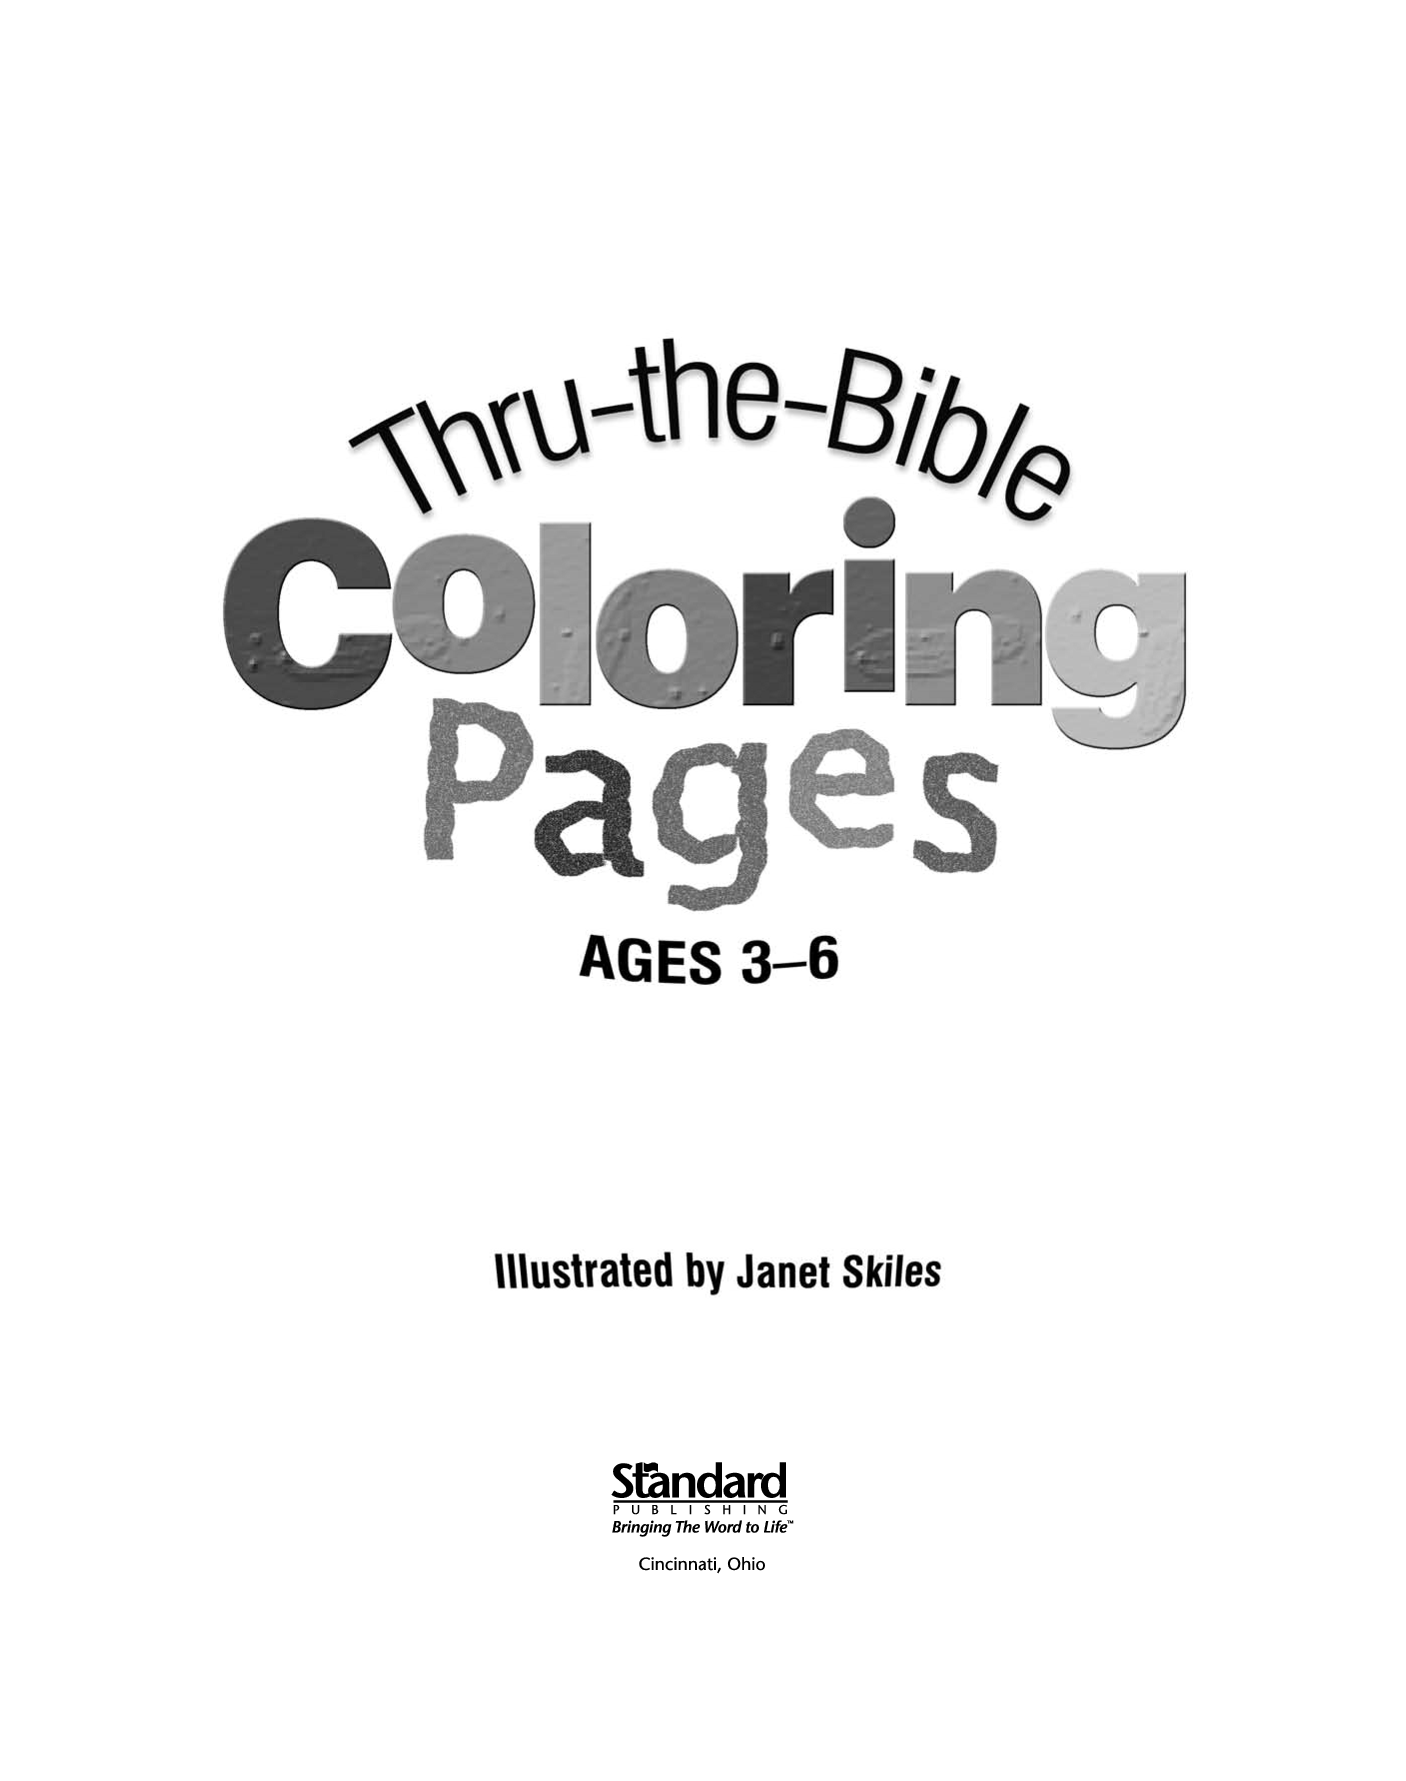 23rd psalm free coloring pages photo - 1